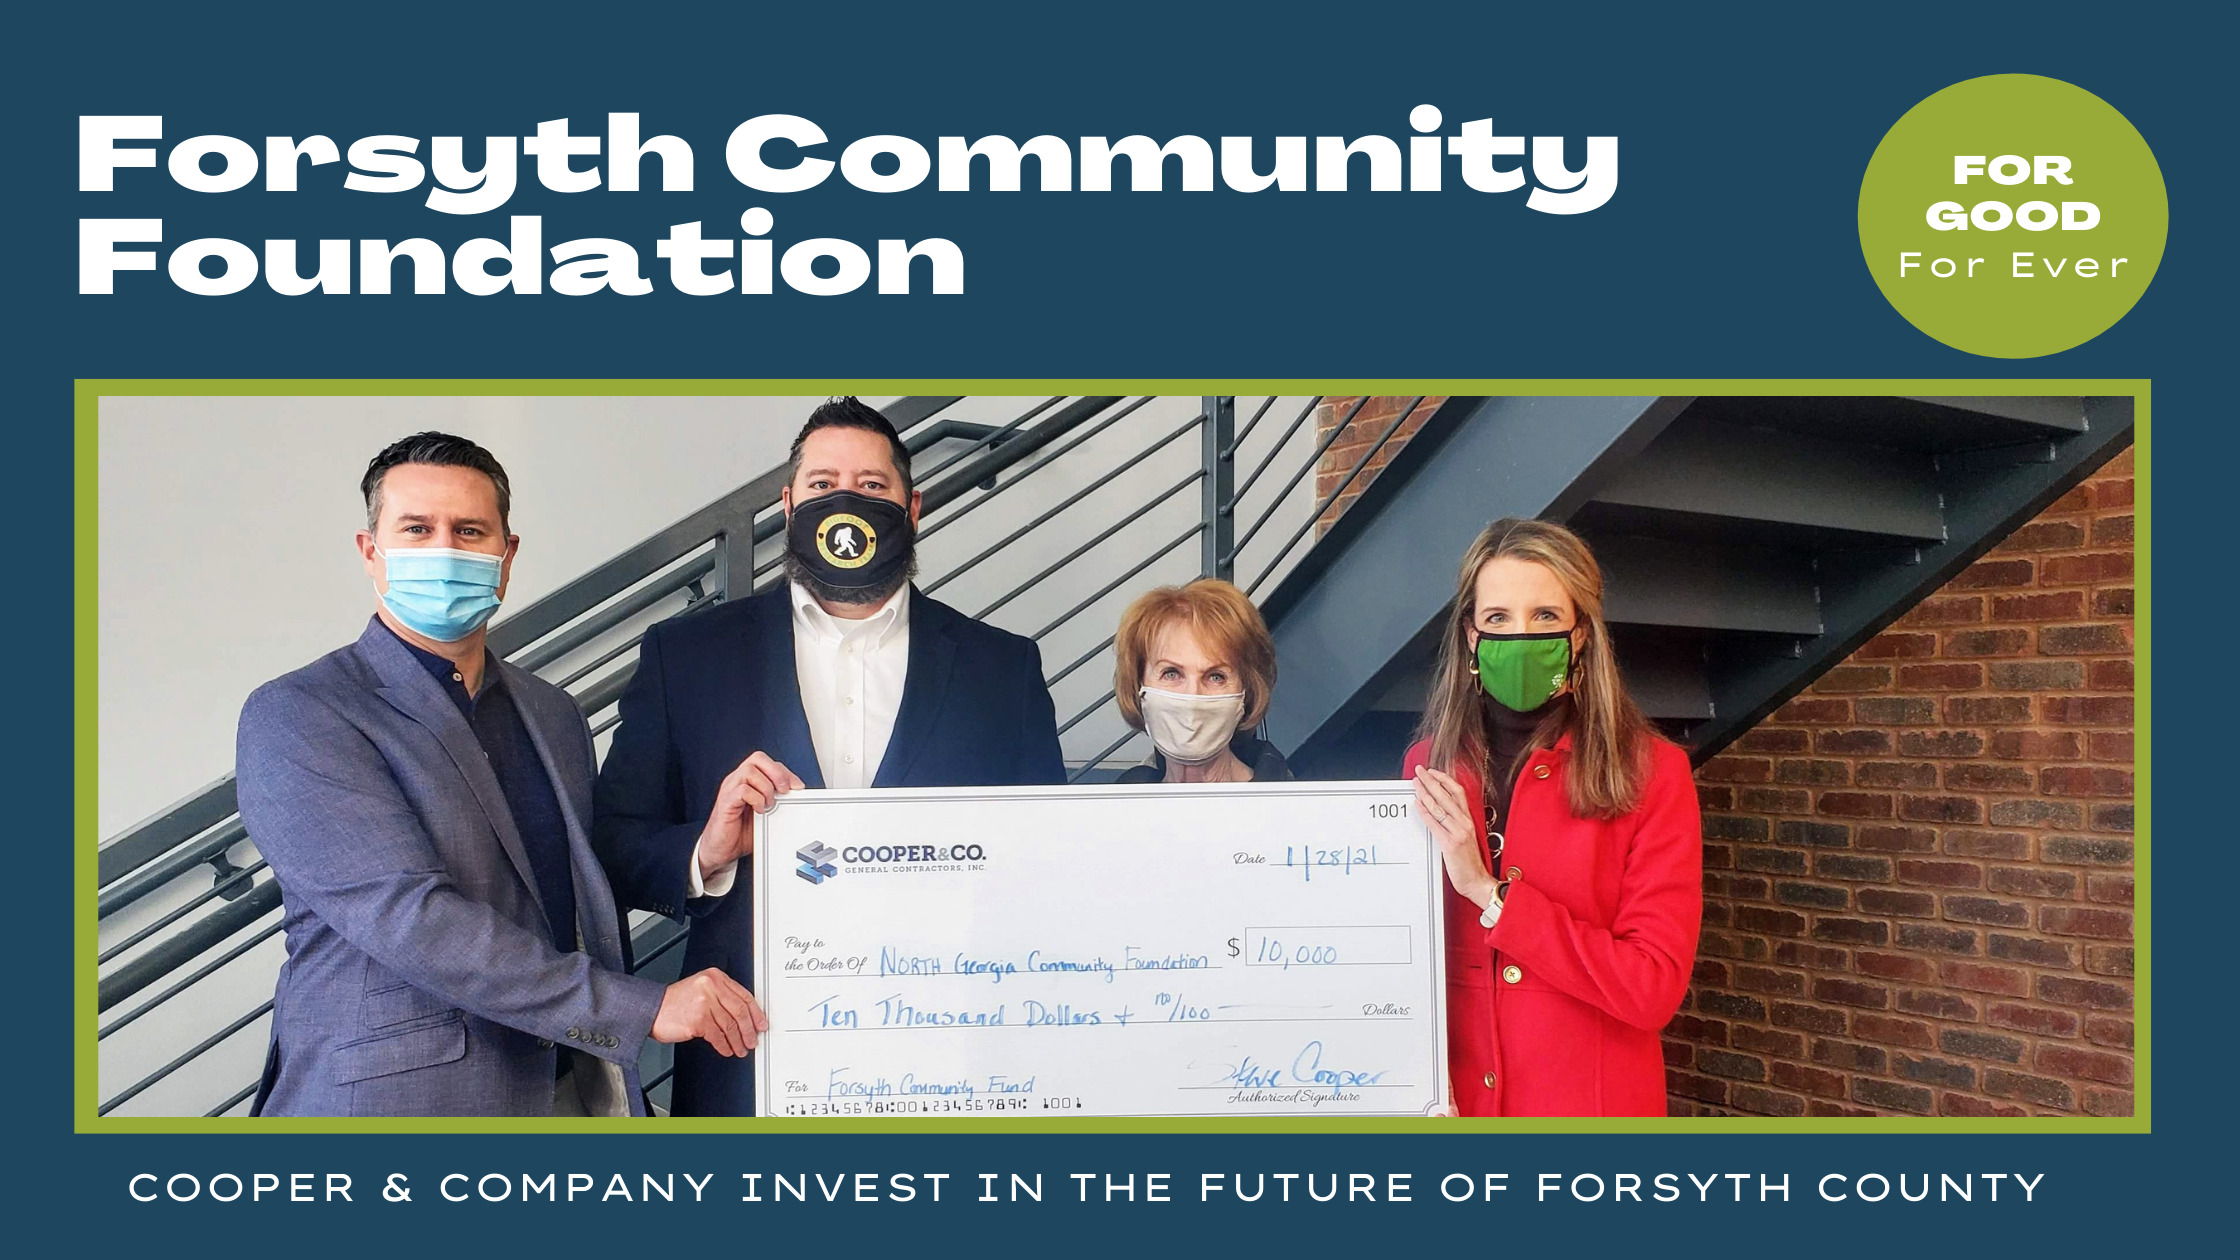 Cooper & Company Invest in the Future of Forsyth County   Cooper & Company General Contractors